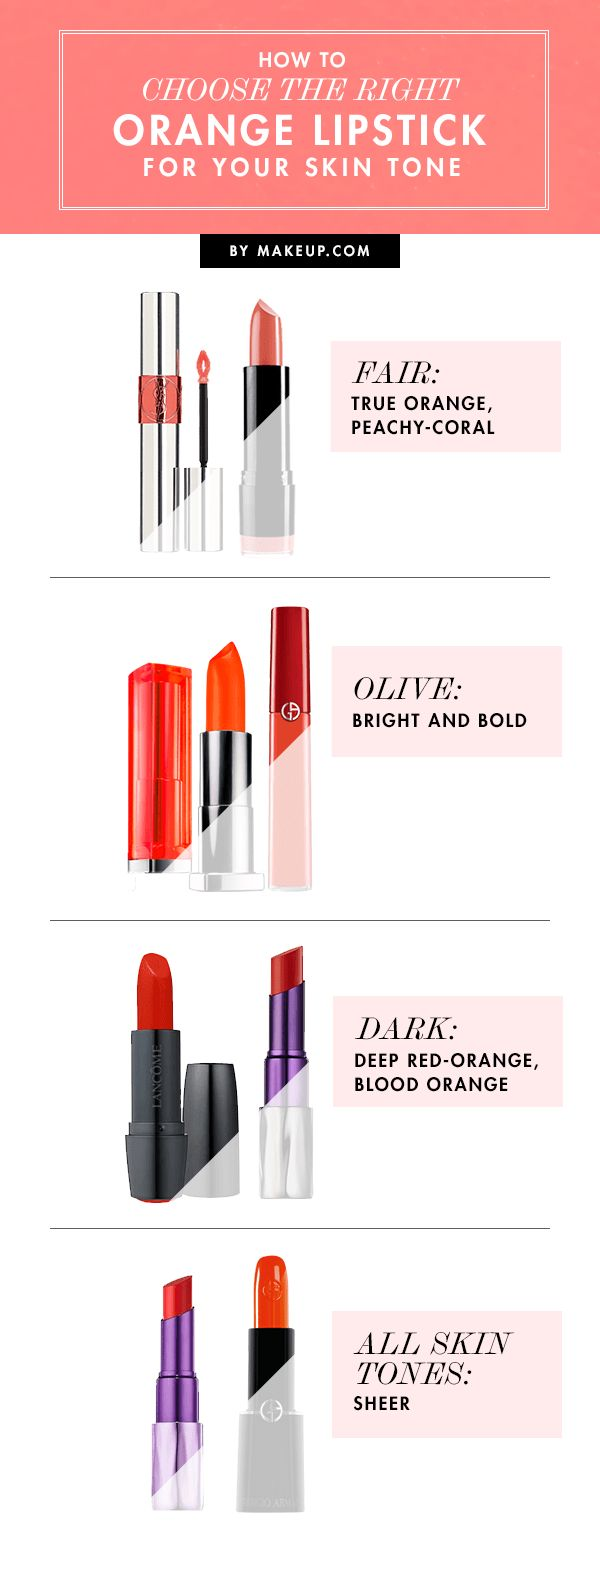 How to Choose the Right Orange Lipstick for Your Skin Tone